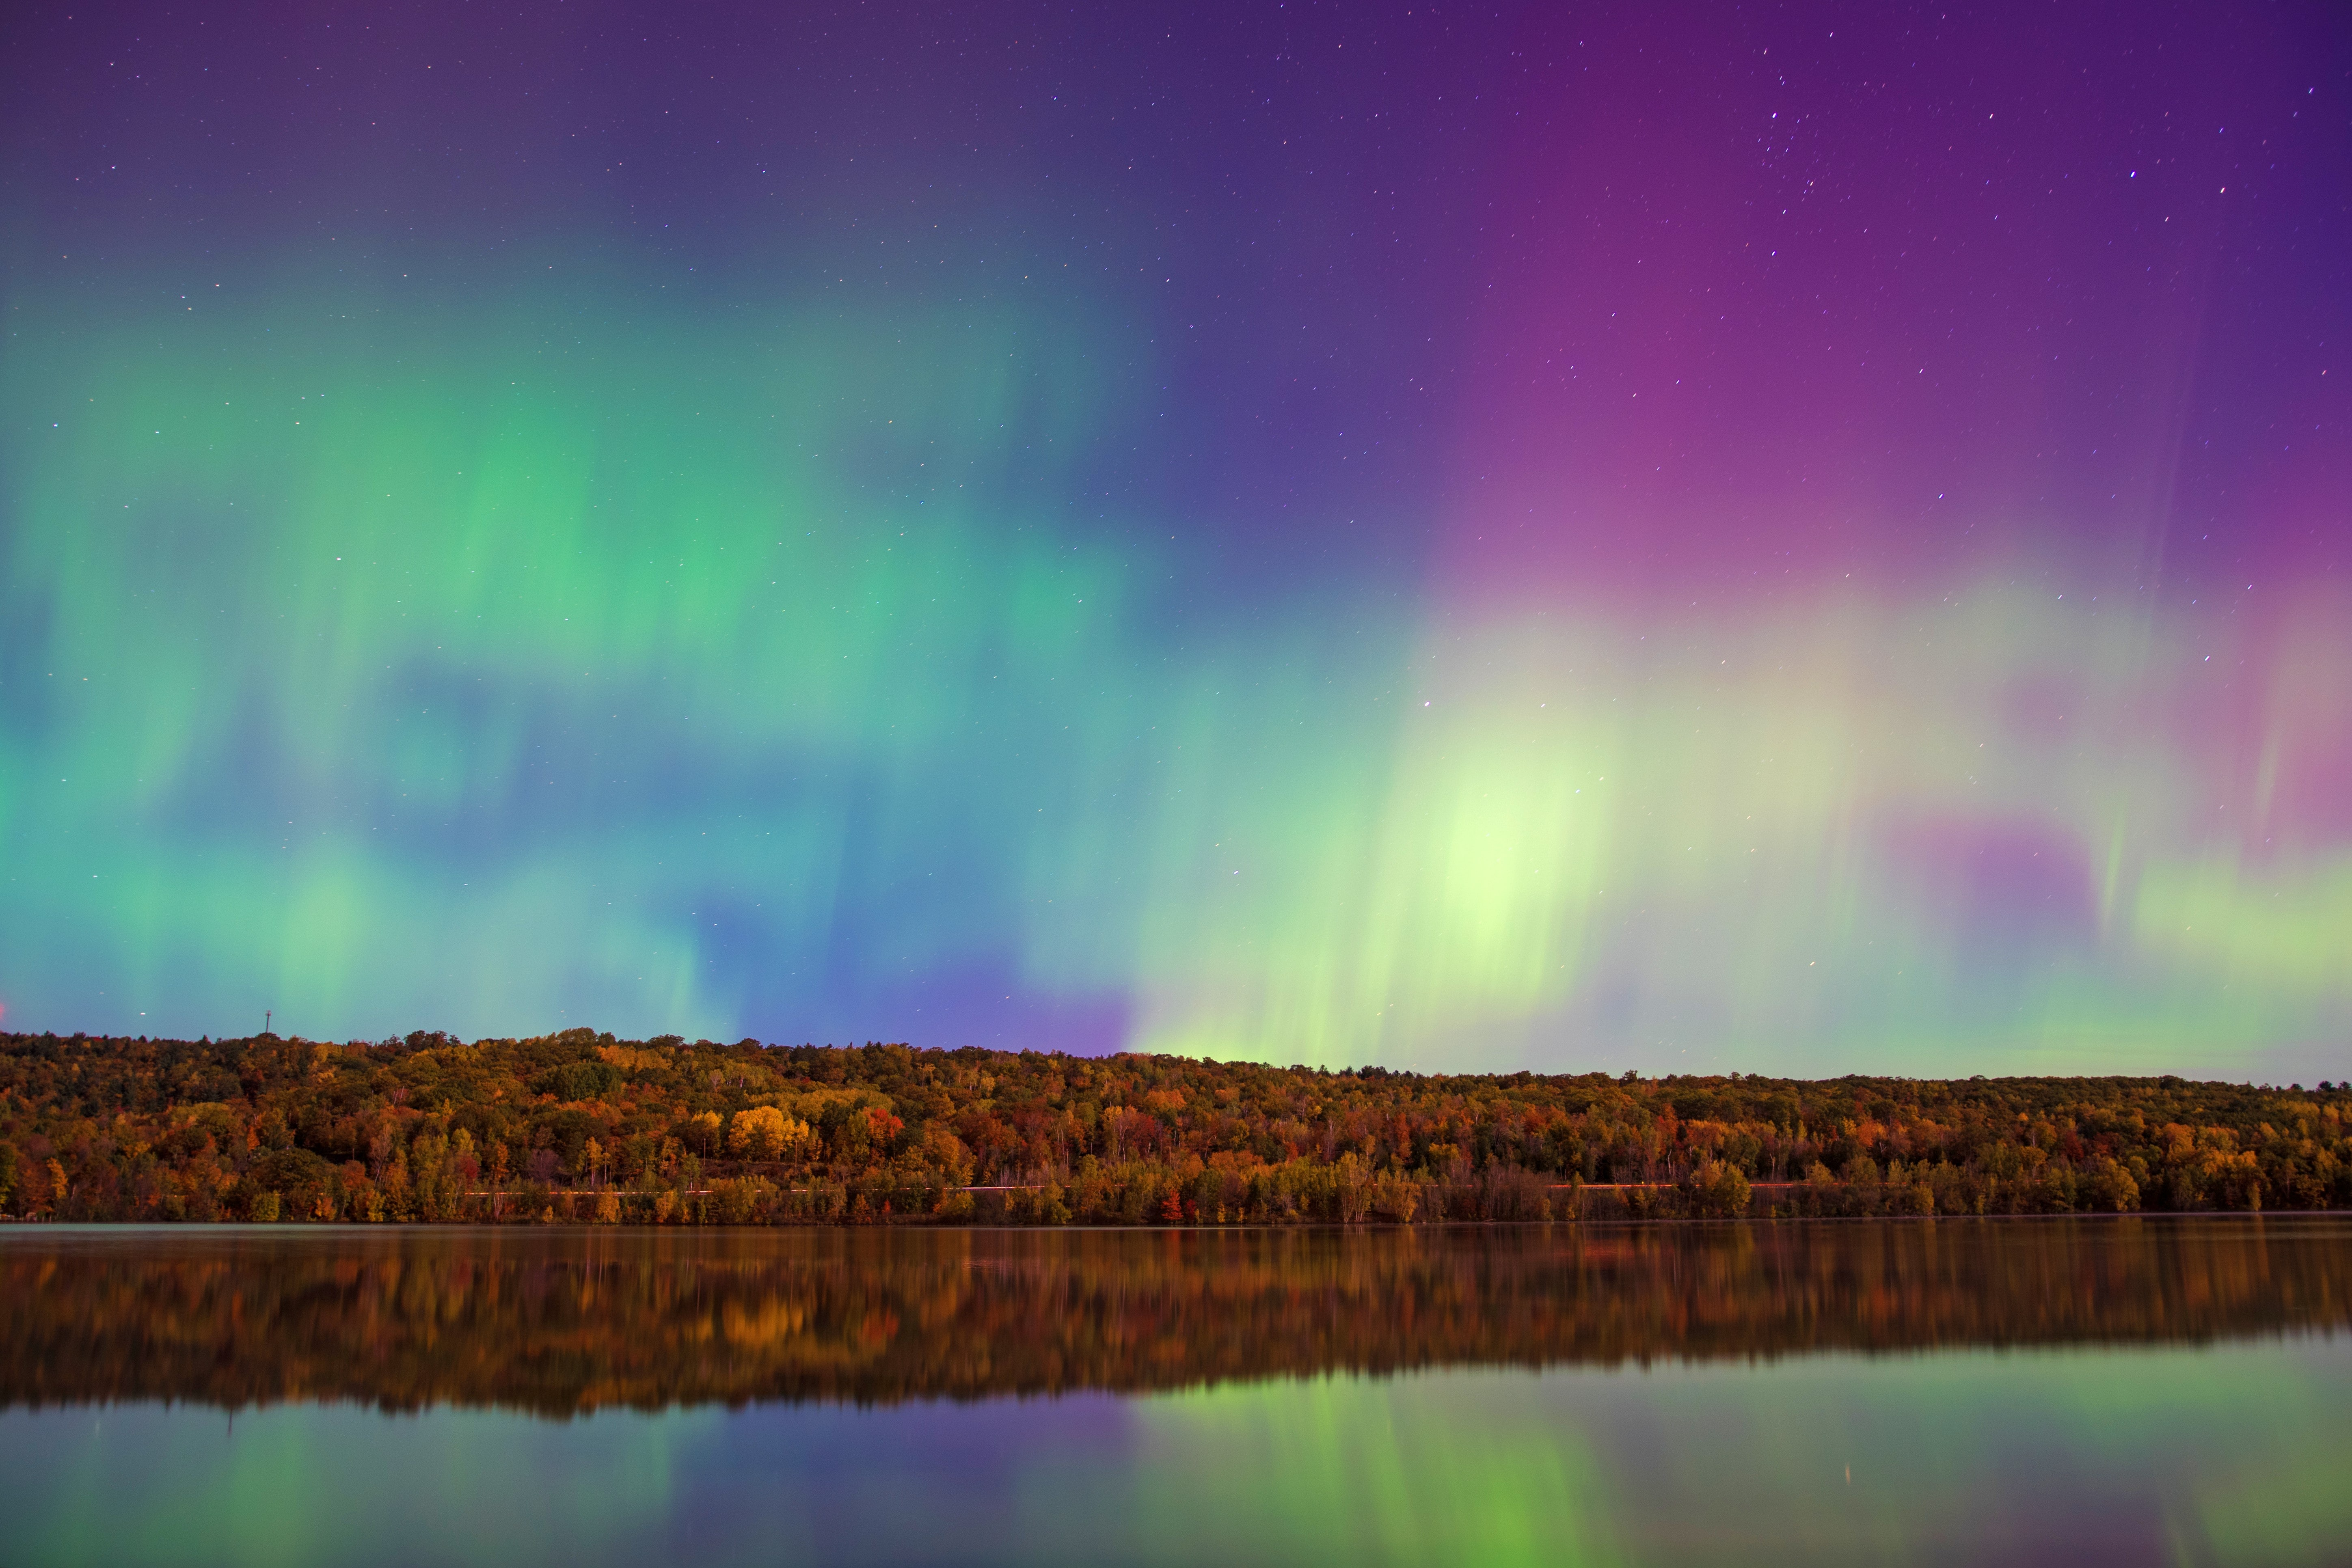 Colorful northern lights in the night sky over a tranquil lake in Houghton